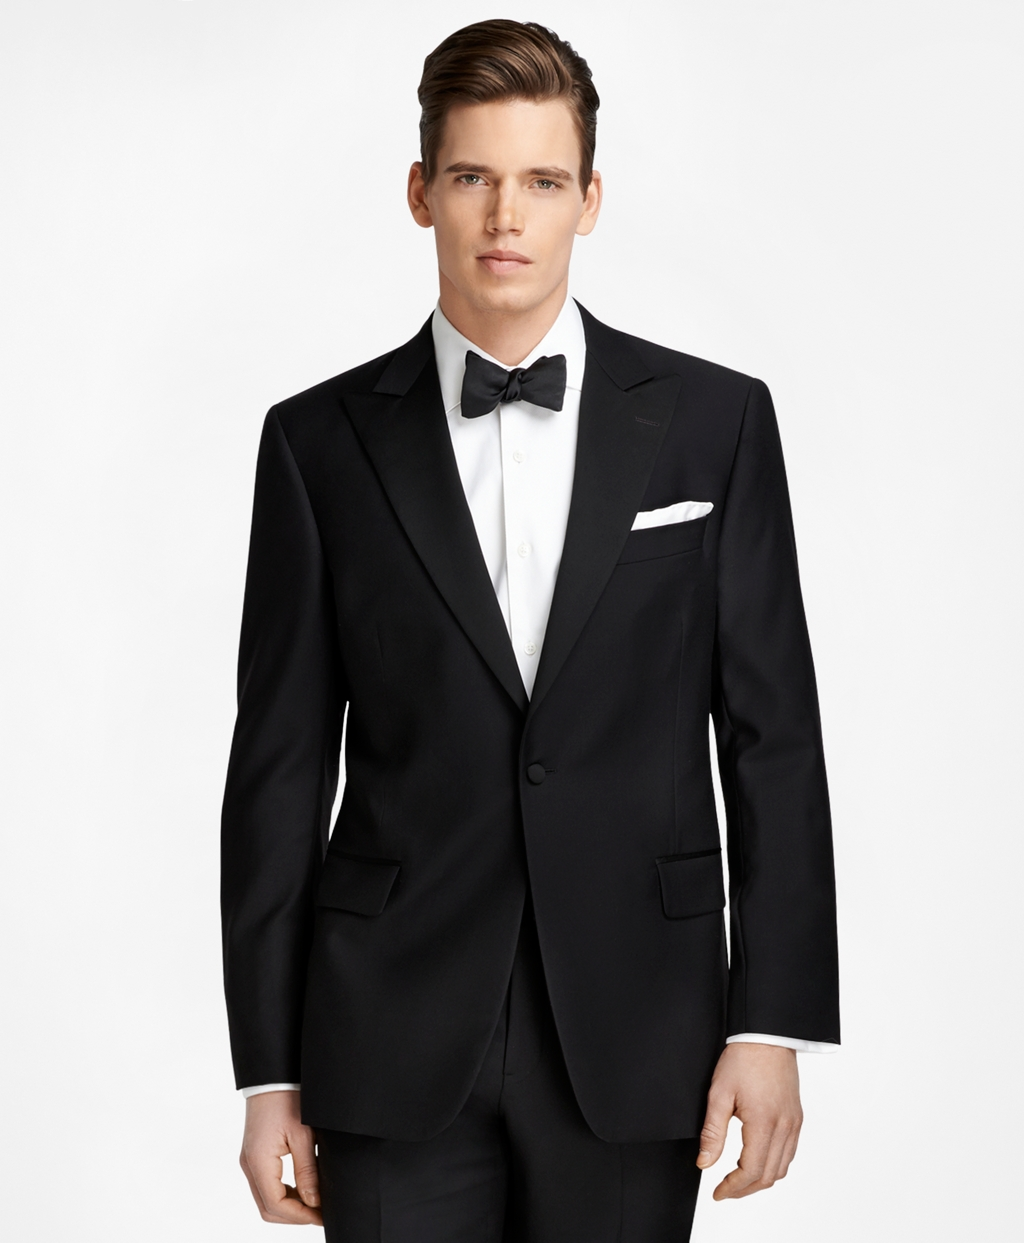 New Vintage Tuxedos, Tailcoats, Morning Suits, Dinner Jackets Brooks Brothers Mens Slim Fit One-Button Peak Lapel Tuxedo $1,198.00 AT vintagedancer.com